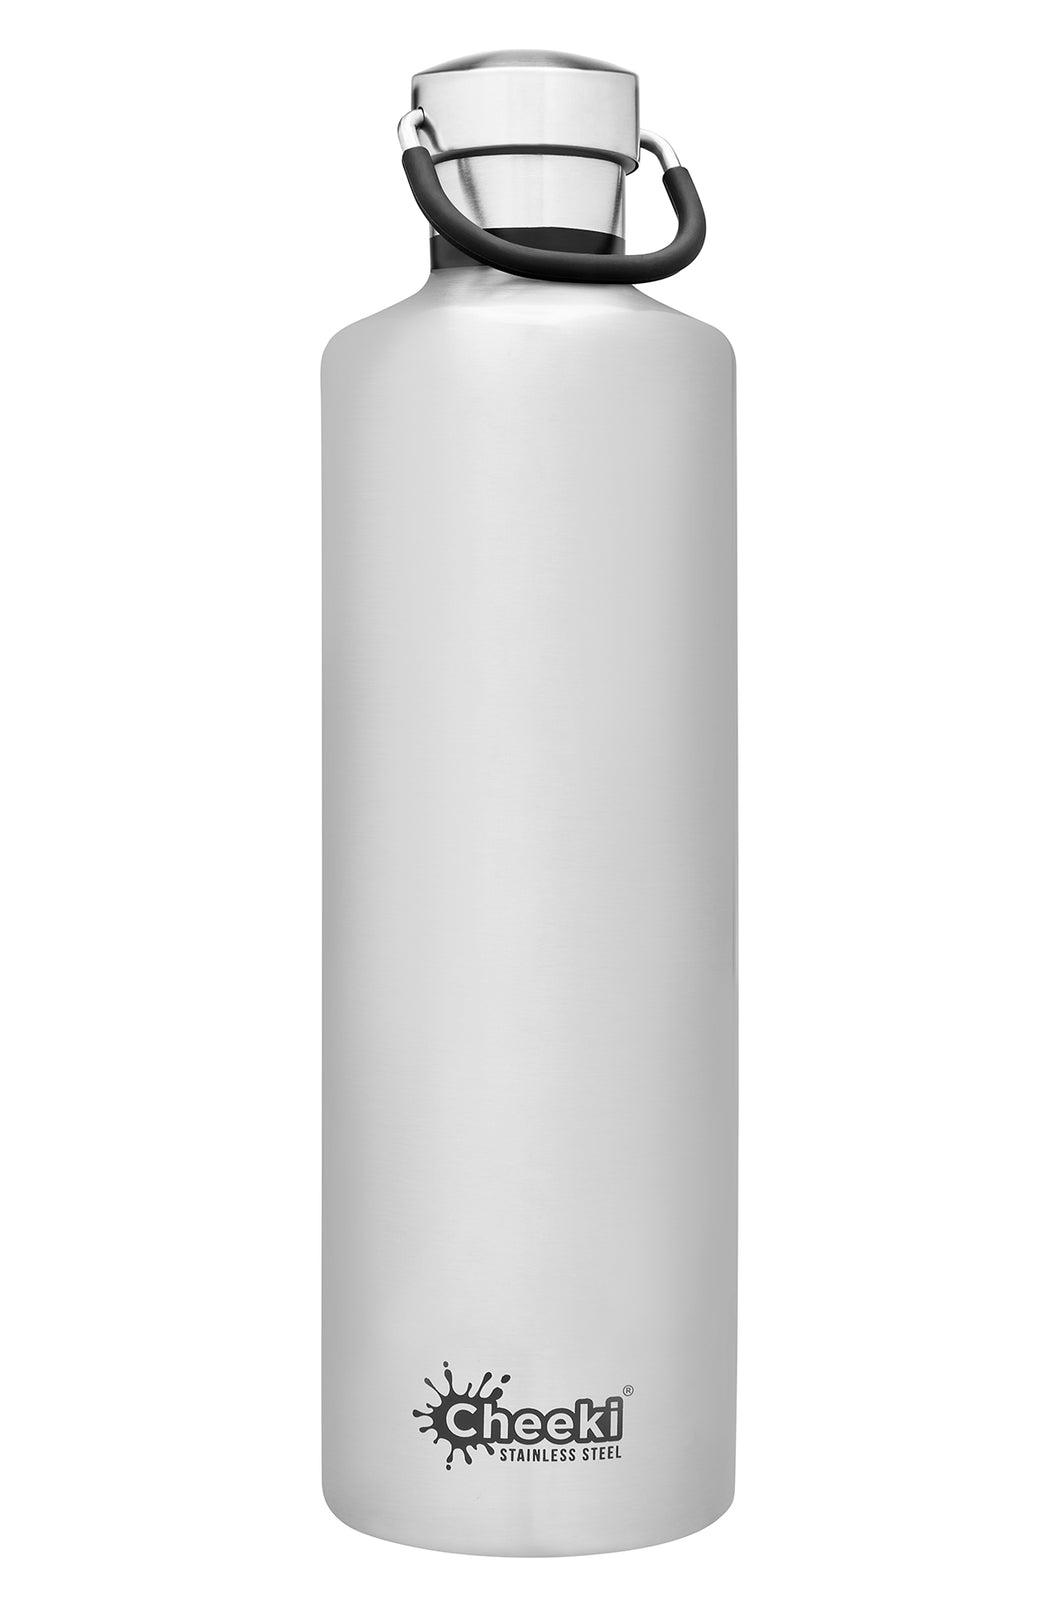 Cheeki 1 Litre Insulated Bottle - Silver